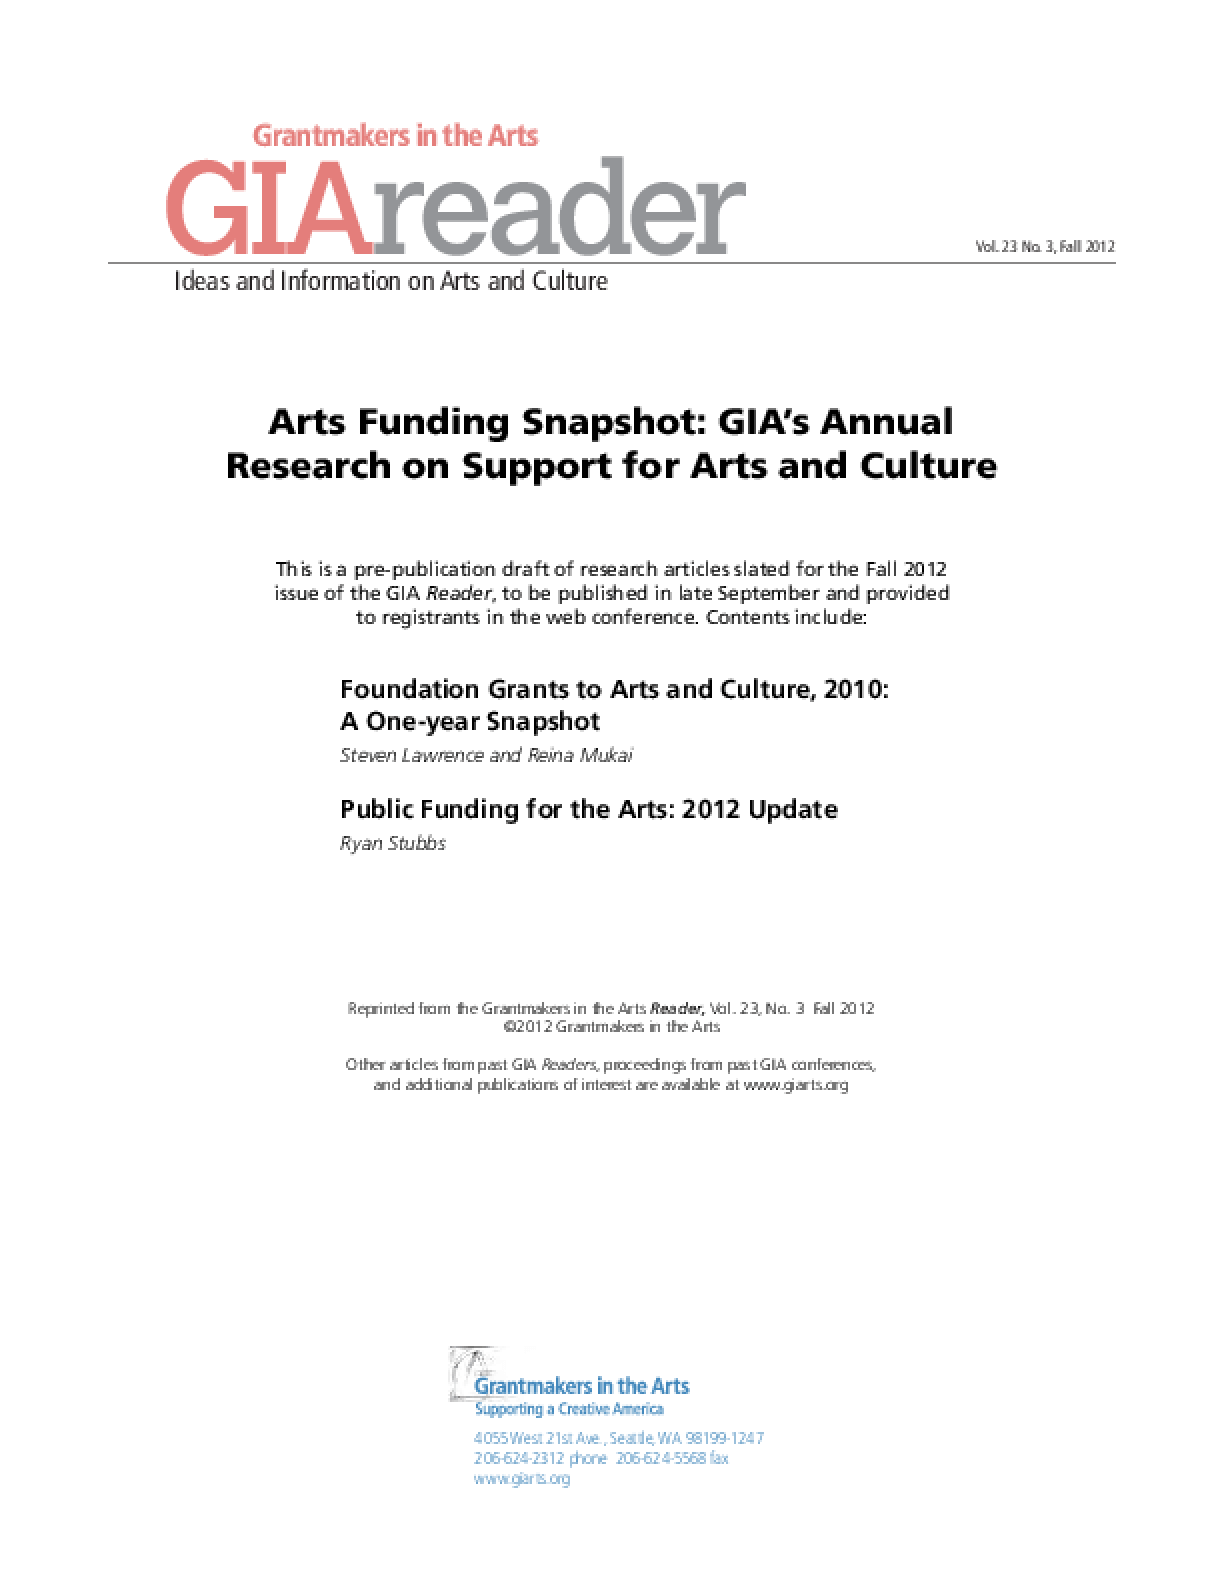 Arts Funding Snapshot: GIA's Annual Research on Support for Arts and Culture, 2012